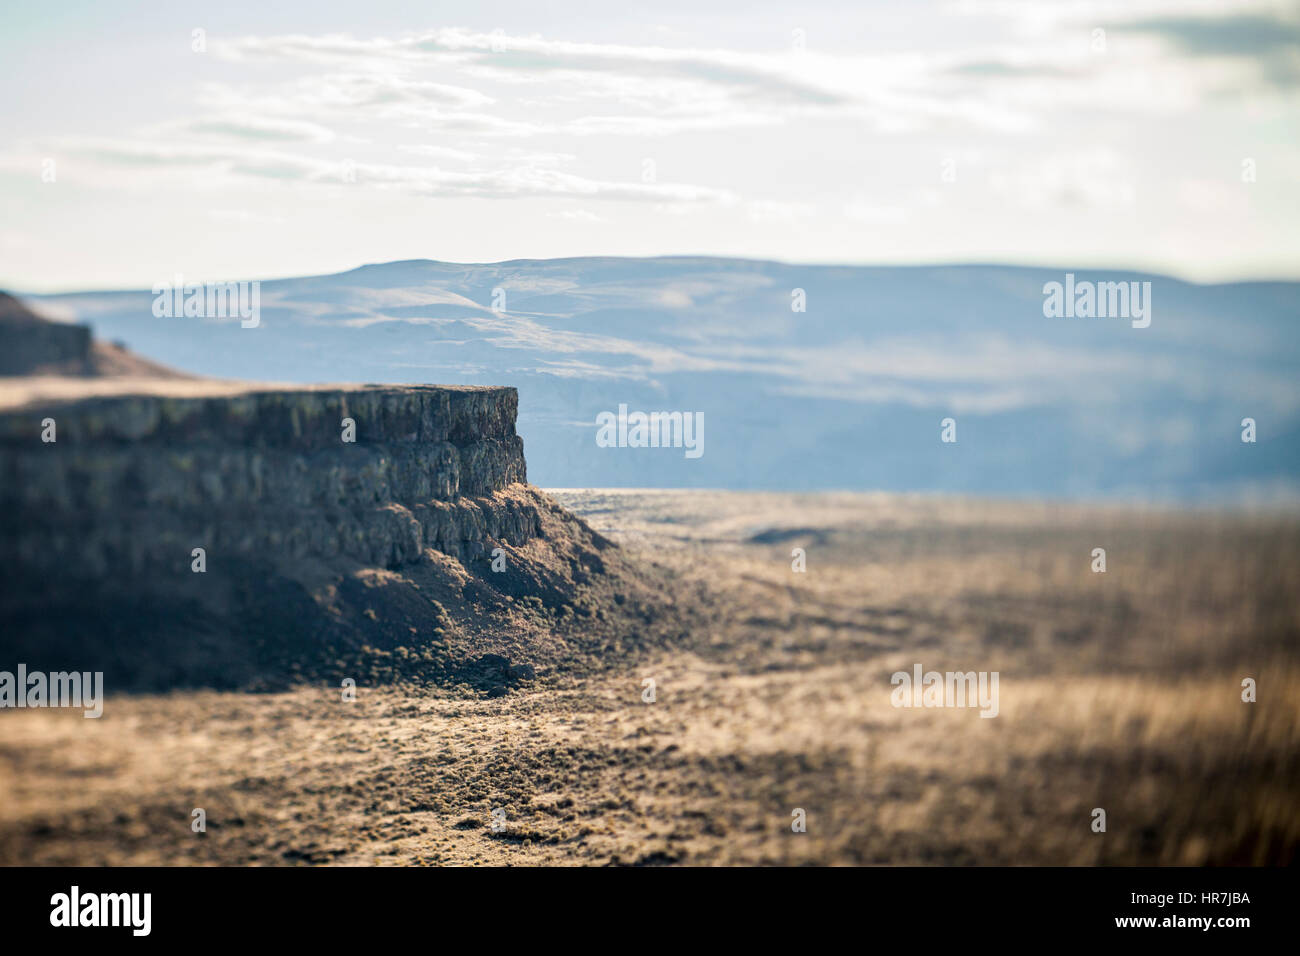 A rocky outcropping in Eastern Washington near Vantage at a place called Echo Basin / Frenchman's Coulee, USA. - Stock Image